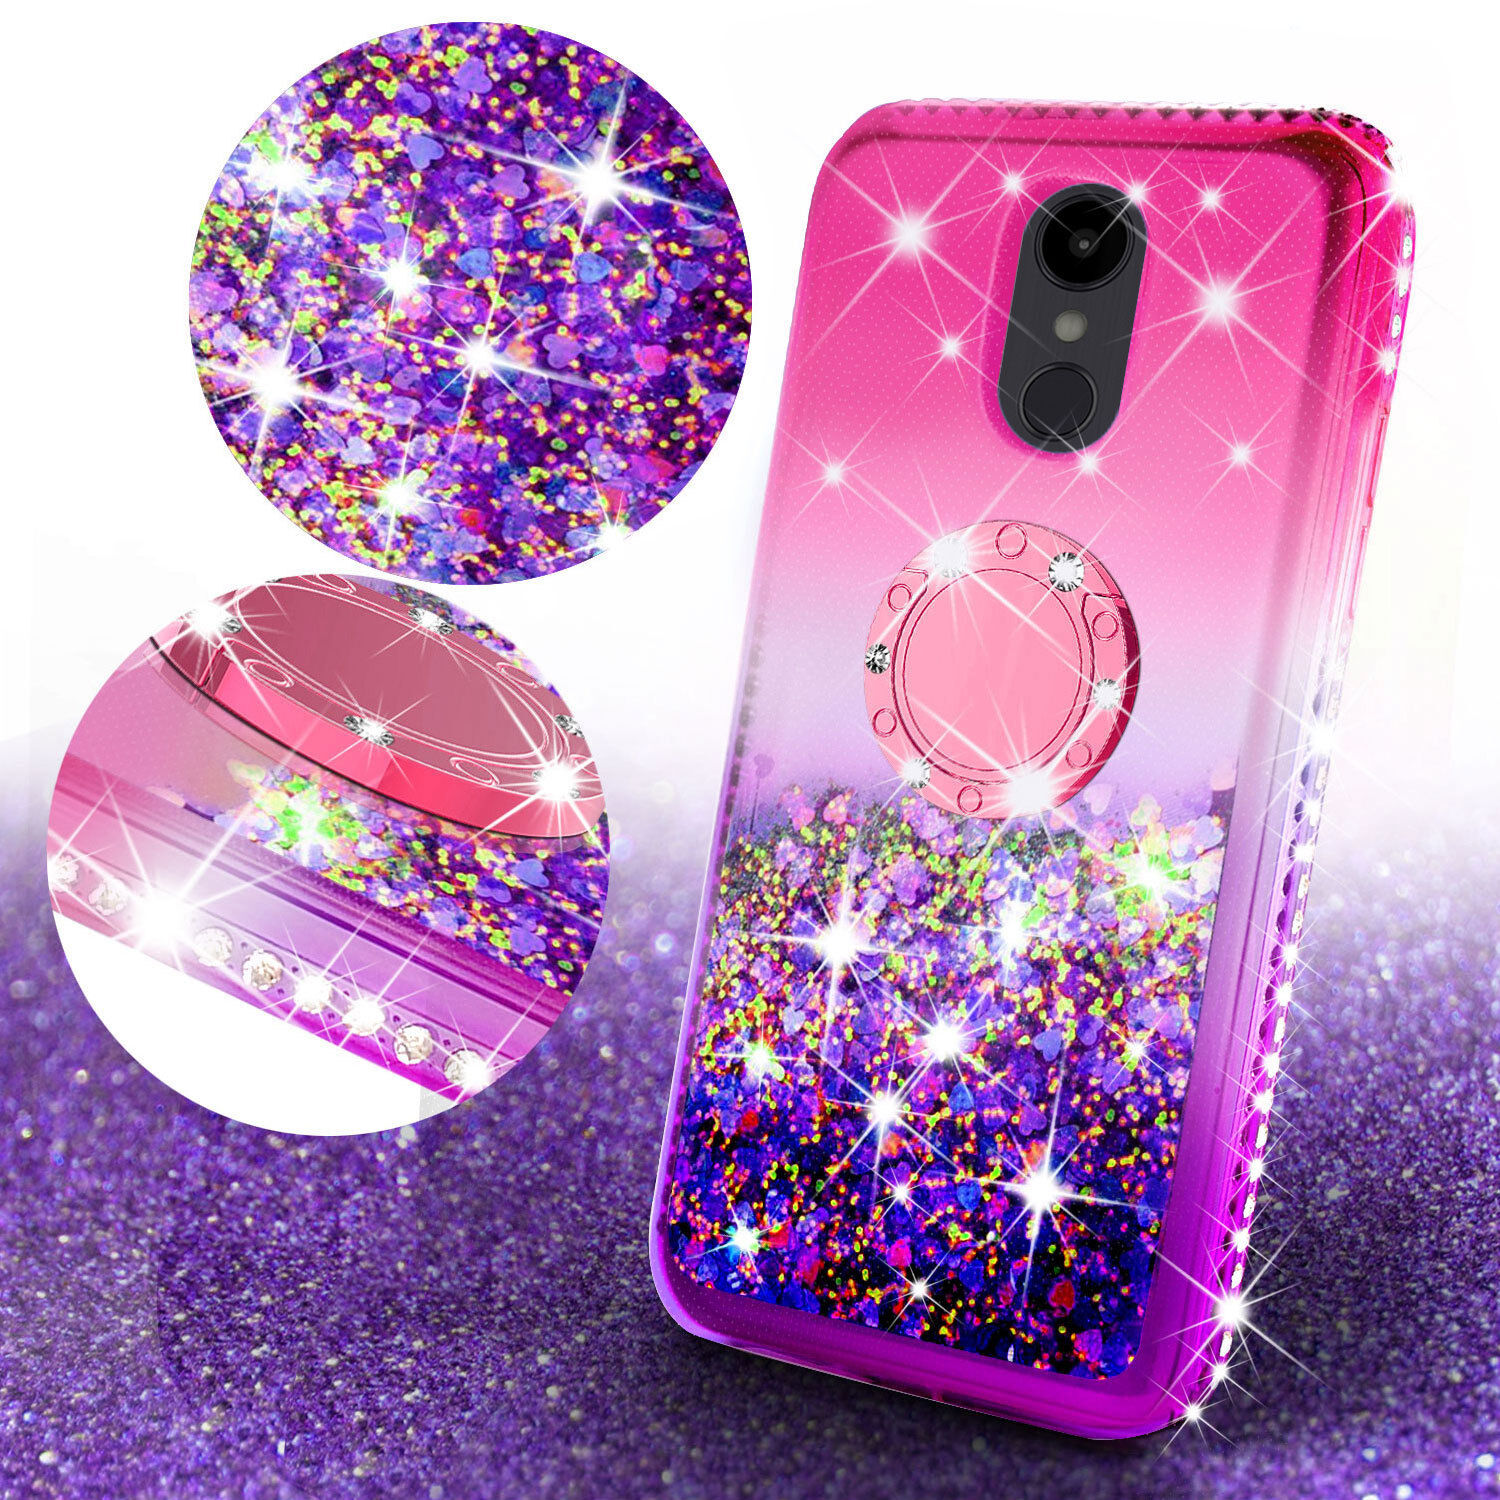 brand new afa14 d5fc8 Details about LG G7/G7 ThinQ Cute Bling Liquid Glitter Shiny Bumper Ring  Kickstand Phone Case